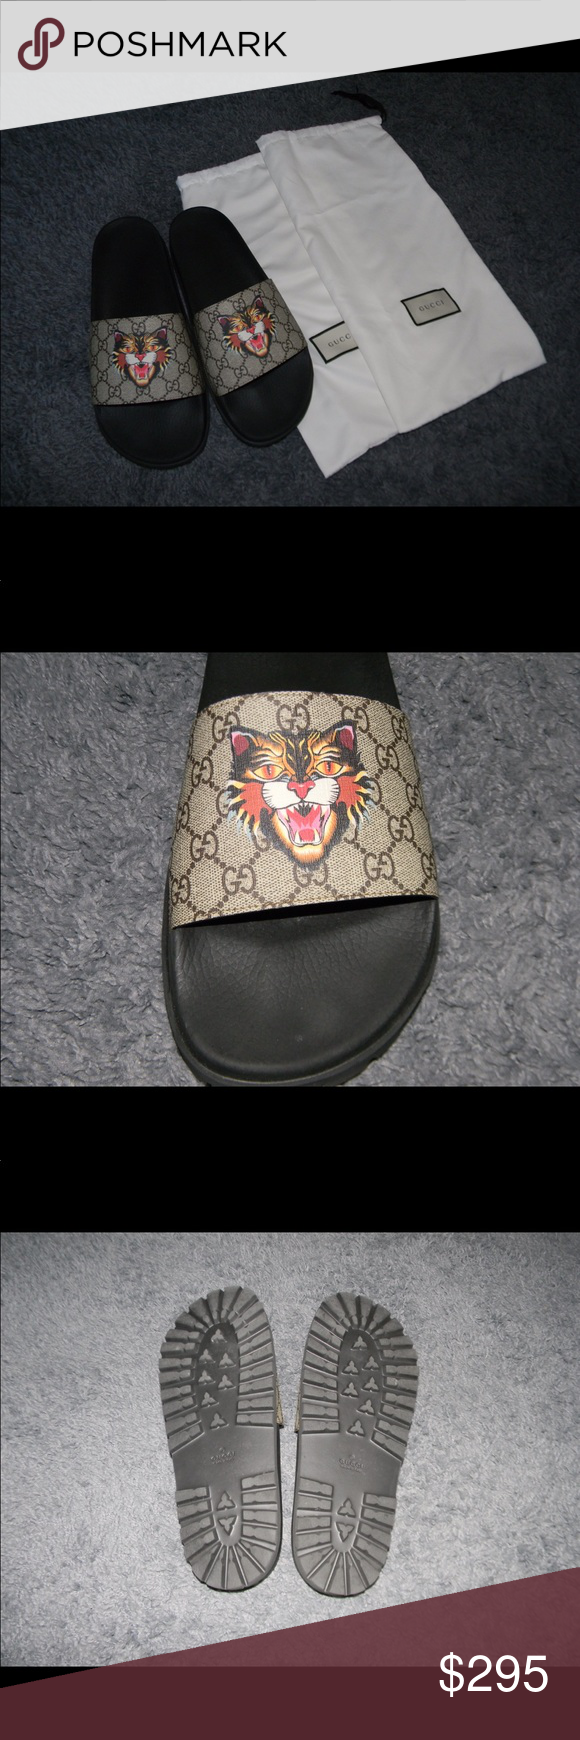 072b9589 Men's Angry Cat Canvas Supreme Slides 44 Size 13, 100% authentic, my ...